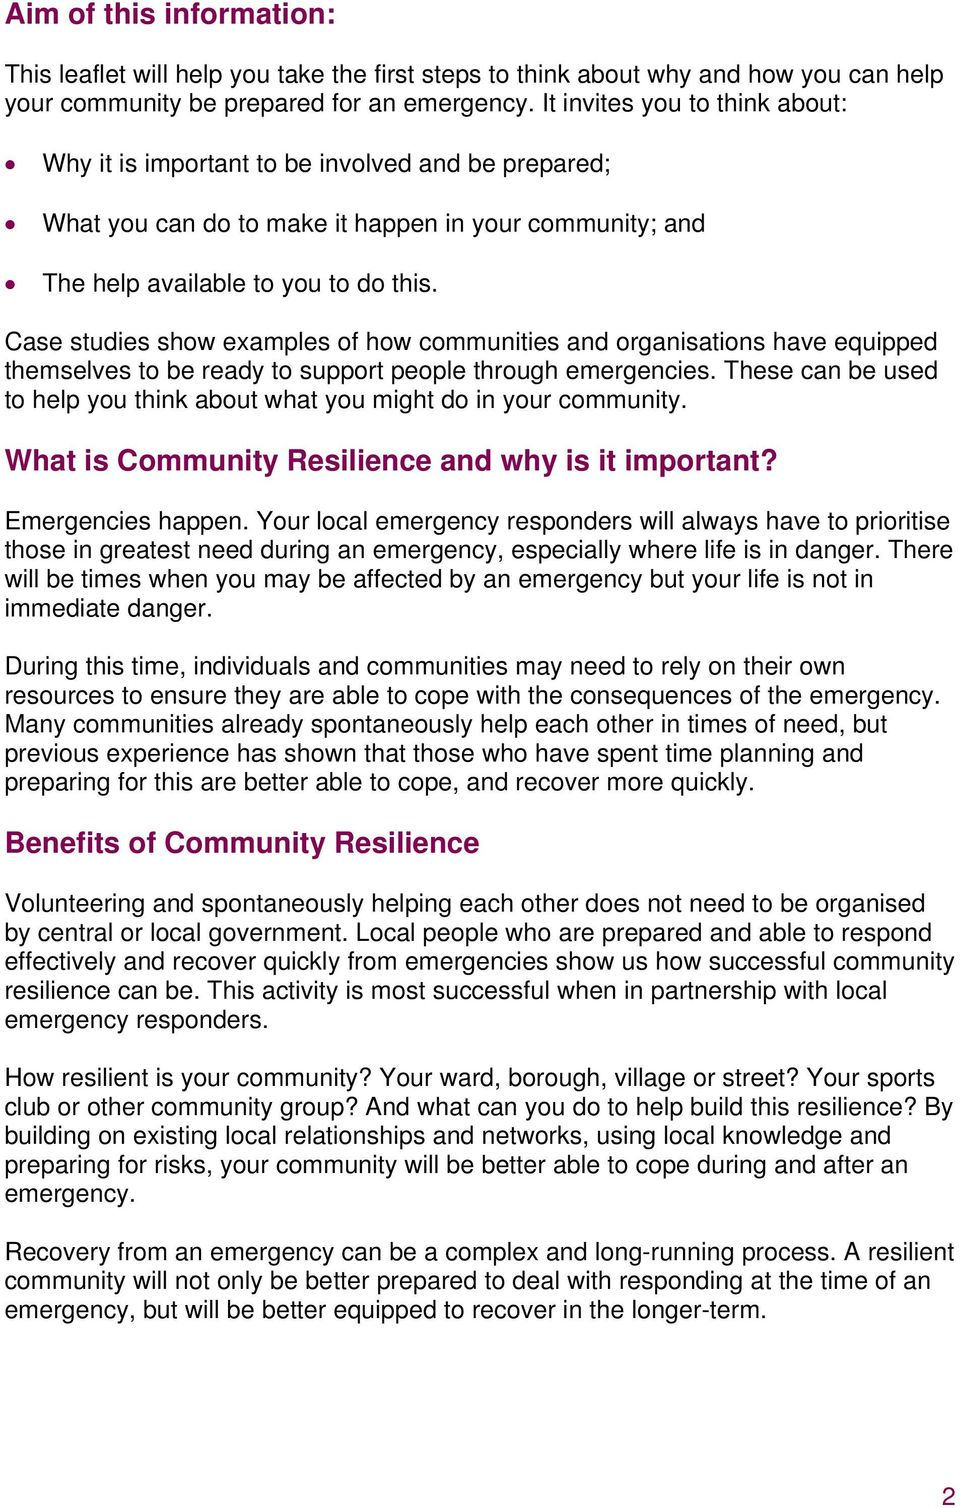 Case studies show examples of how communities and organisations have equipped themselves to be ready to support people through emergencies.